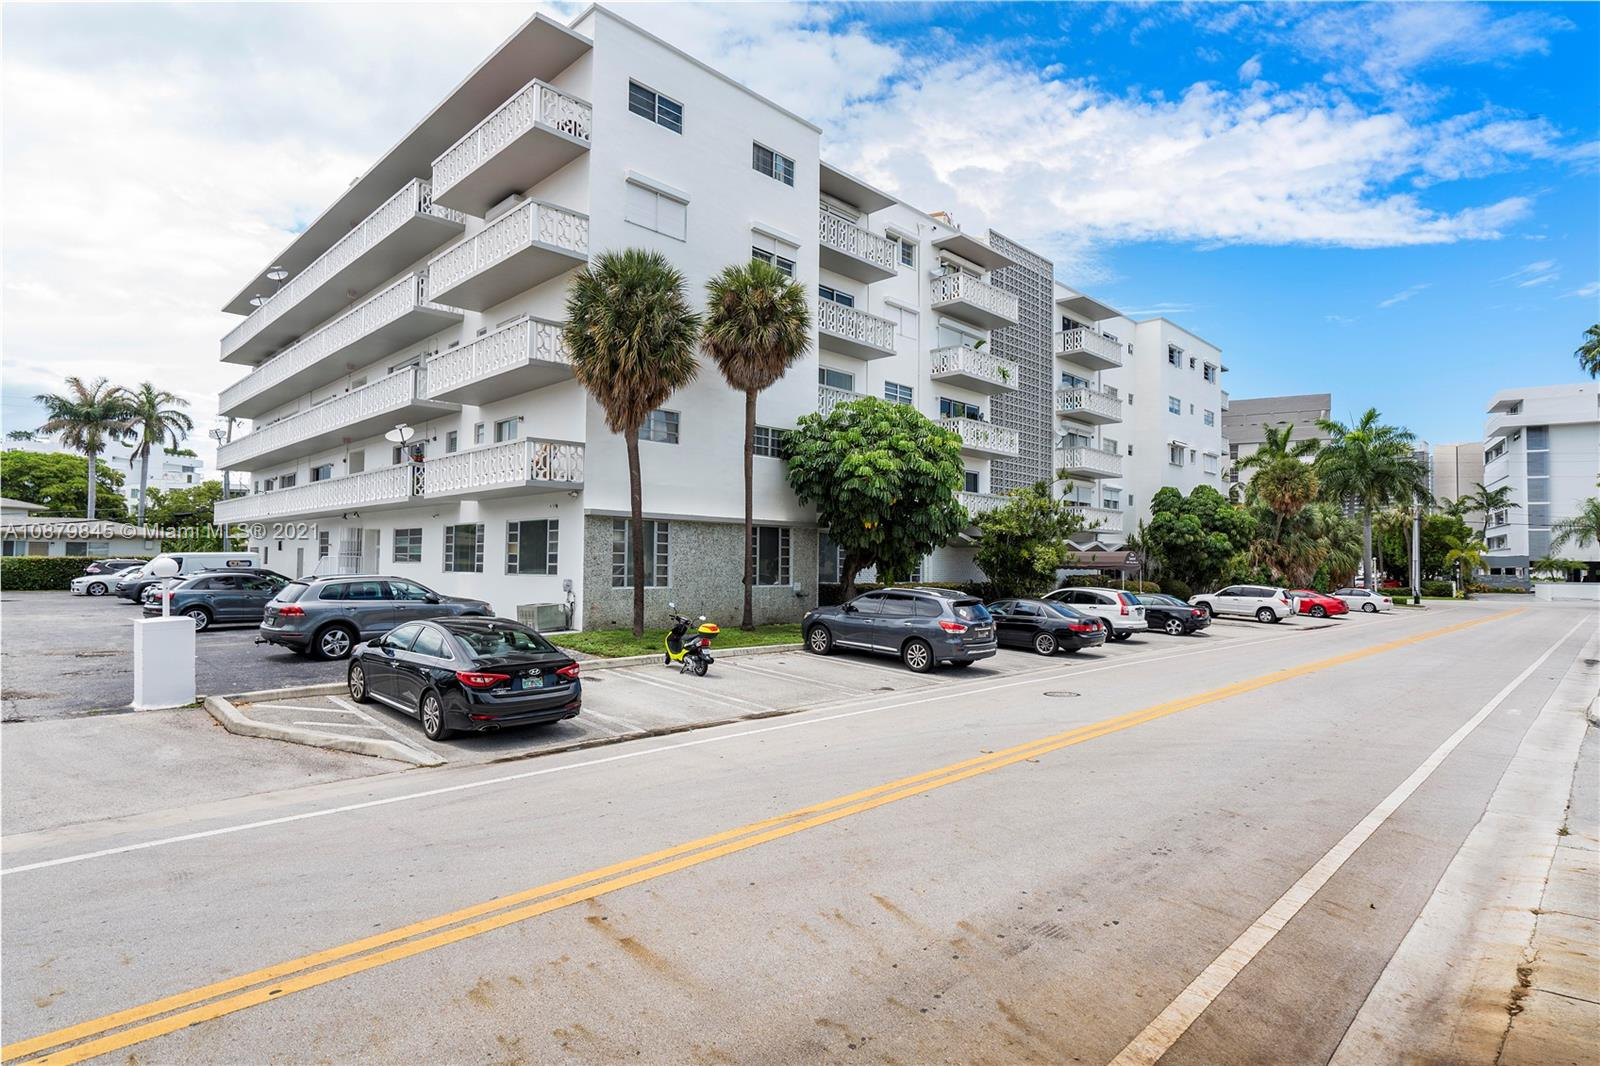 GREAT LOCATION!! Large 1 bedroom w/ 1 ½ bathrooms. Entirely updated w/ stainless steel appliances and new flooring. Large balcony faces north with nice garden views with minimal obstructions. Lots of closet space. Building is very well maintained and quiet, has a pool and an updated lobby. Laundry in building on 1st floor. Secured building, features beautiful and expansive lobby areas. Steps to the school, shops, restaurants, the beach and houses of worship. One assigned parking space as well as plenty of street parking directly across the street. INVESTORS ARE WELCOME - Unit can be rented right away. According to the building rules, ONLY TWO PEOPLE CAN OCCUPY THIS UNIT. No pets allowed in the building. VERY LOW HOA ONLY $352 PER MONTH. Buyer MUST assume assessment ($156 per month extra).